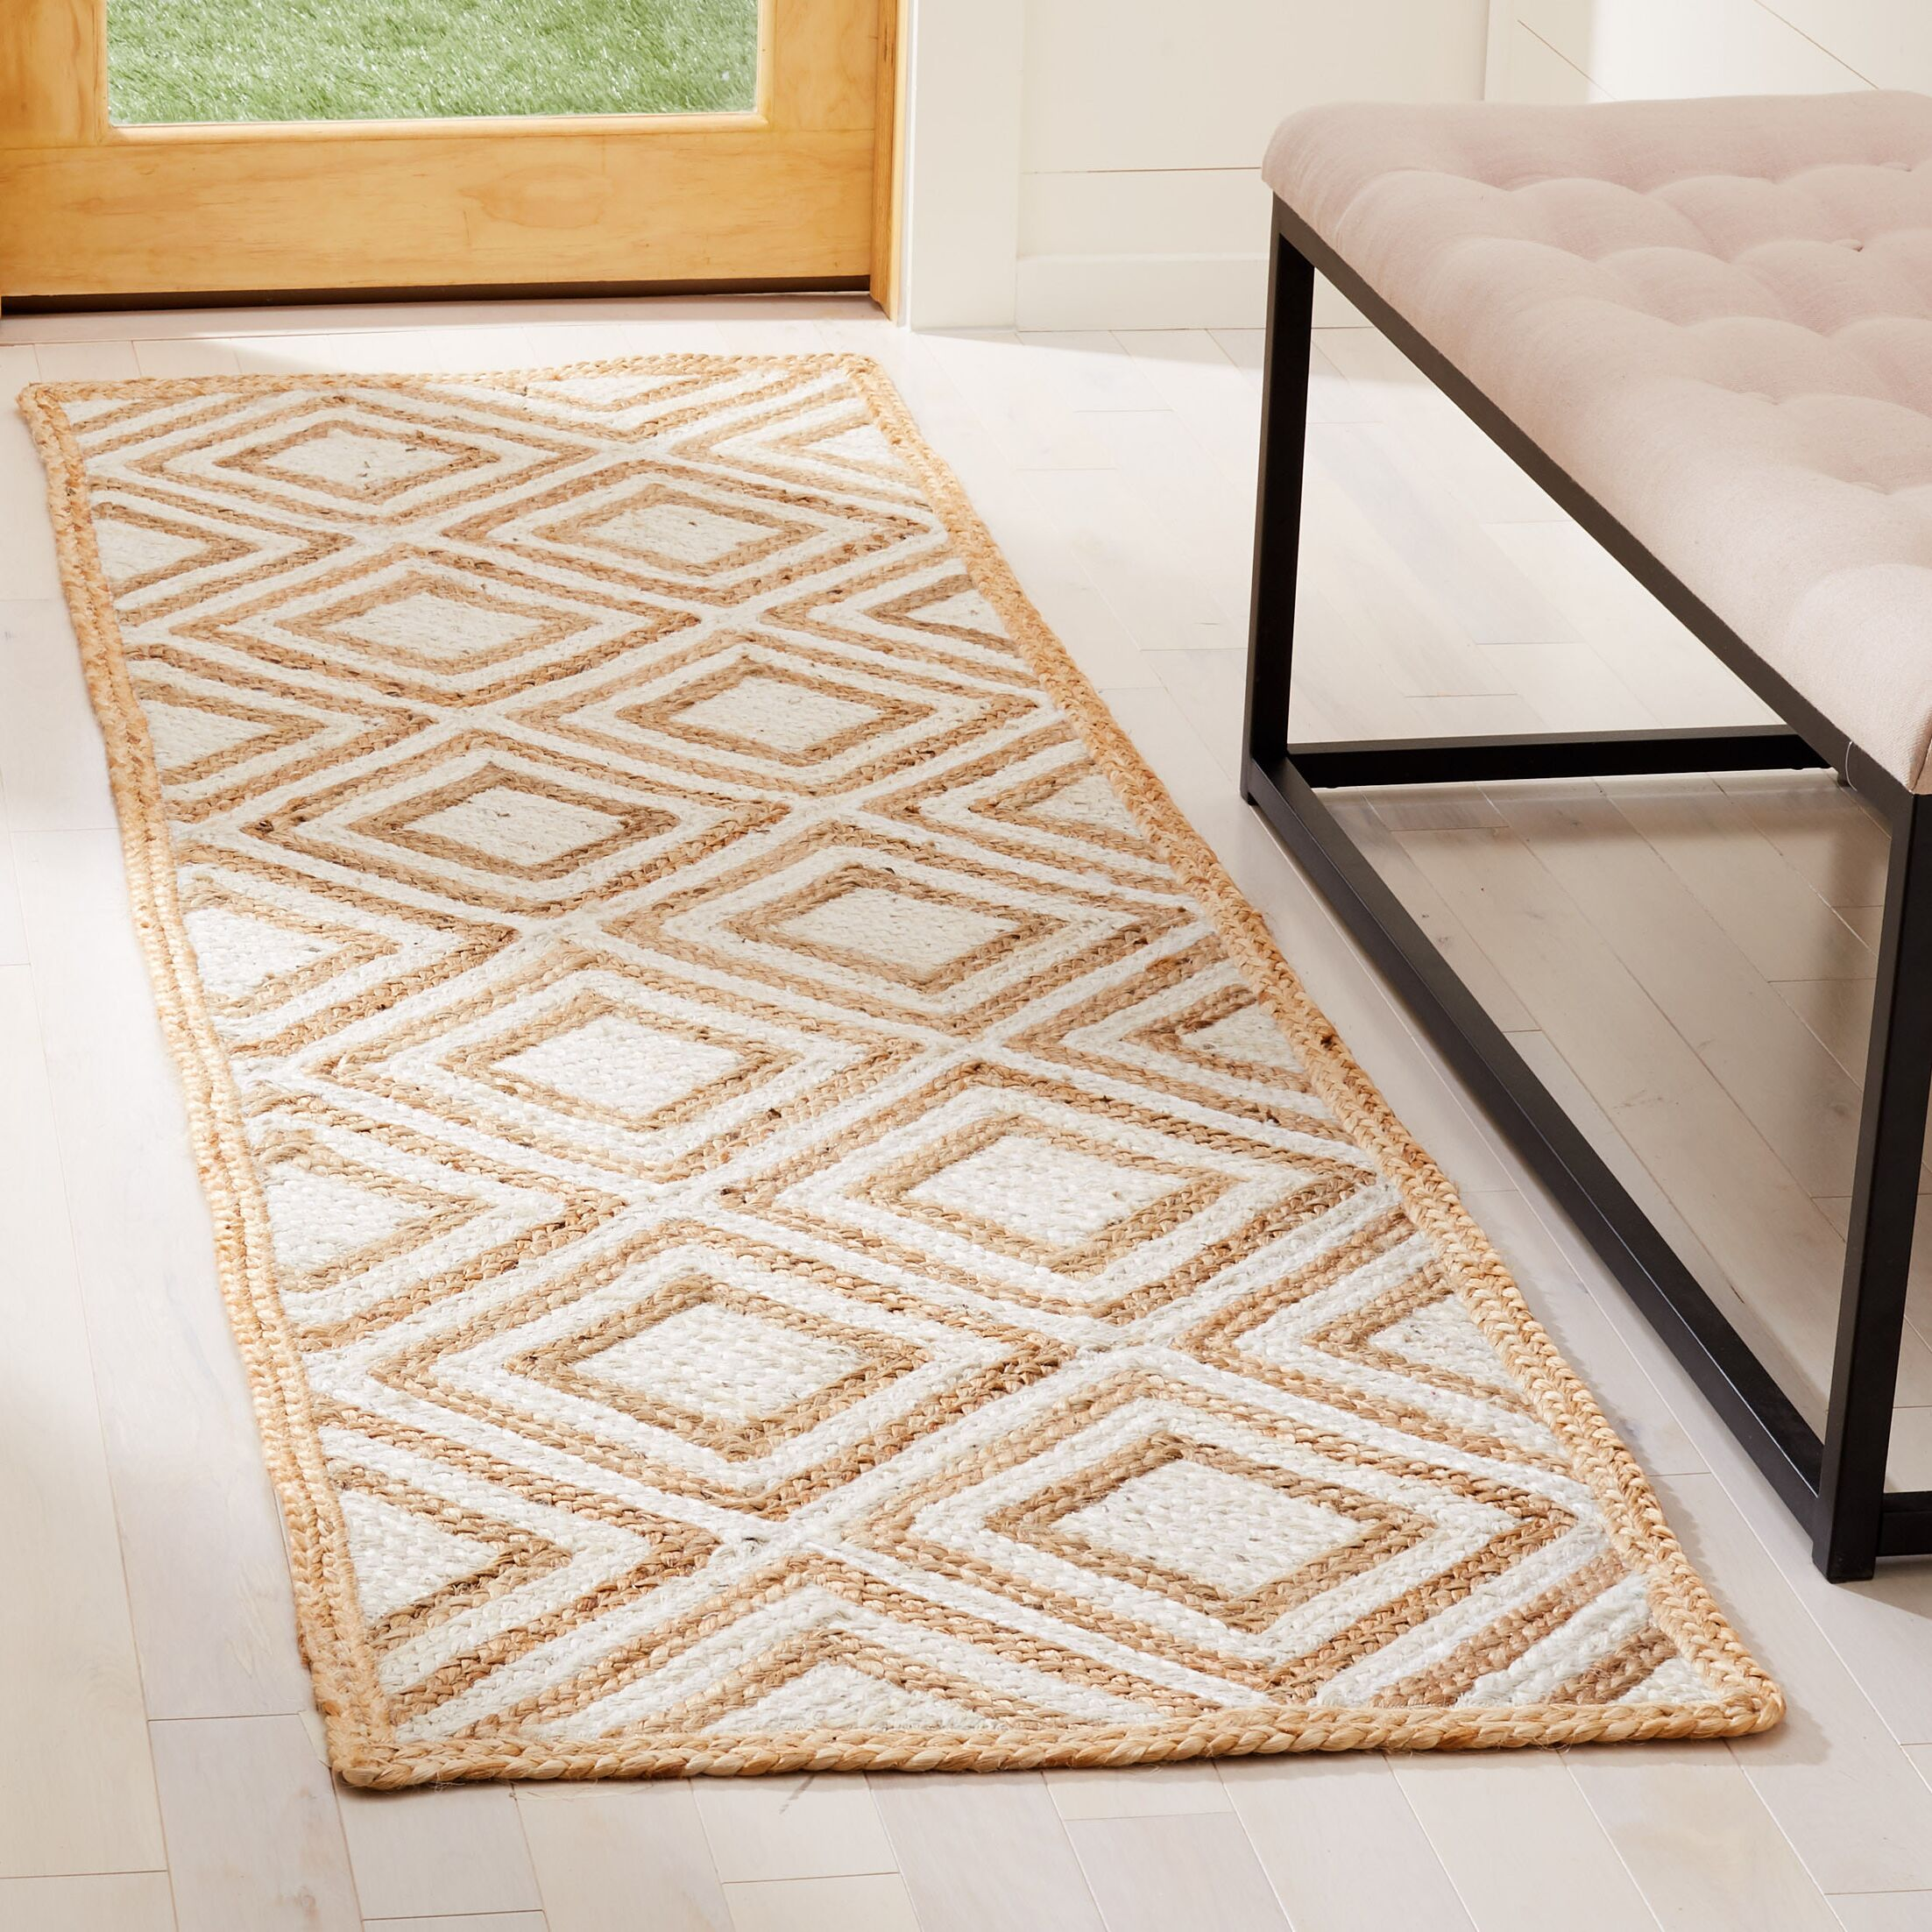 Abhay Contemporary Hand Woven Beige/White Area Rug Rug Size: Runner 2'3